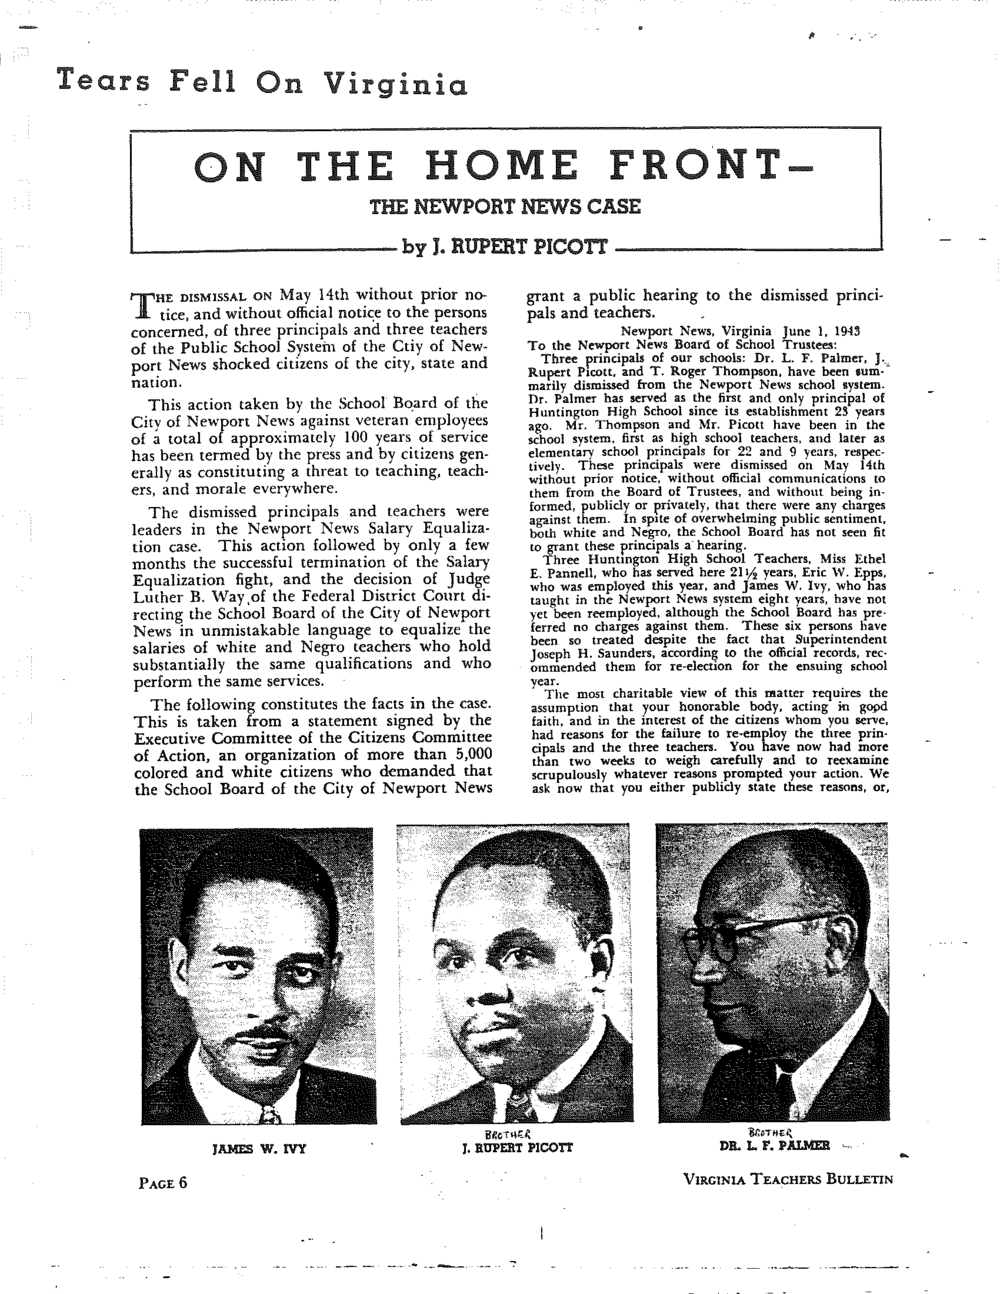 Zeta Lambda 1943 - The Newport News Case 1.png